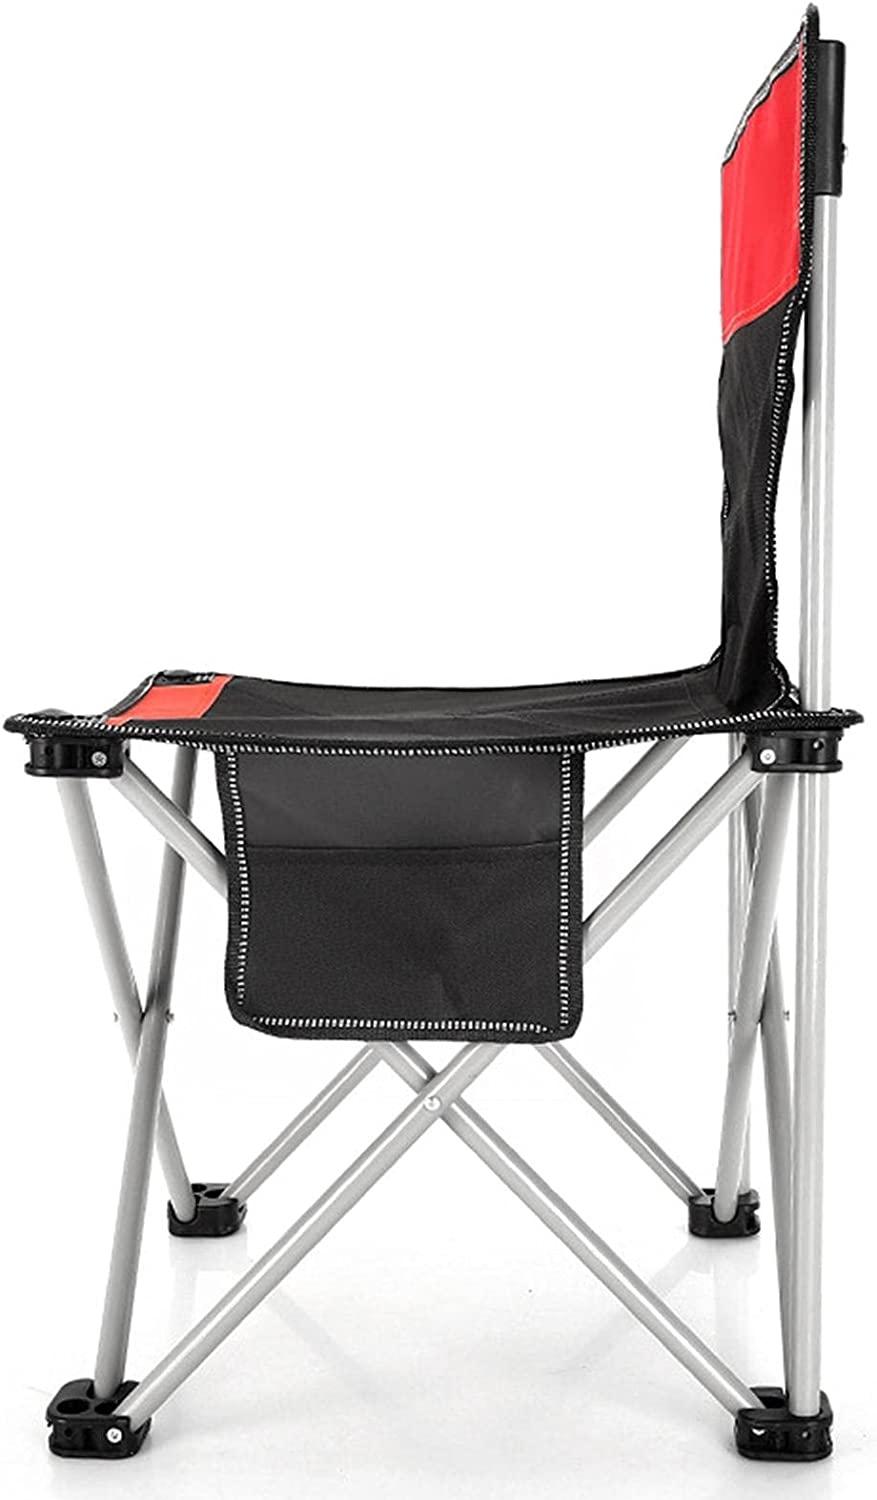 luning Outdoor Chair Lawn Set Sale item Folding Bag Cash special price with Carry